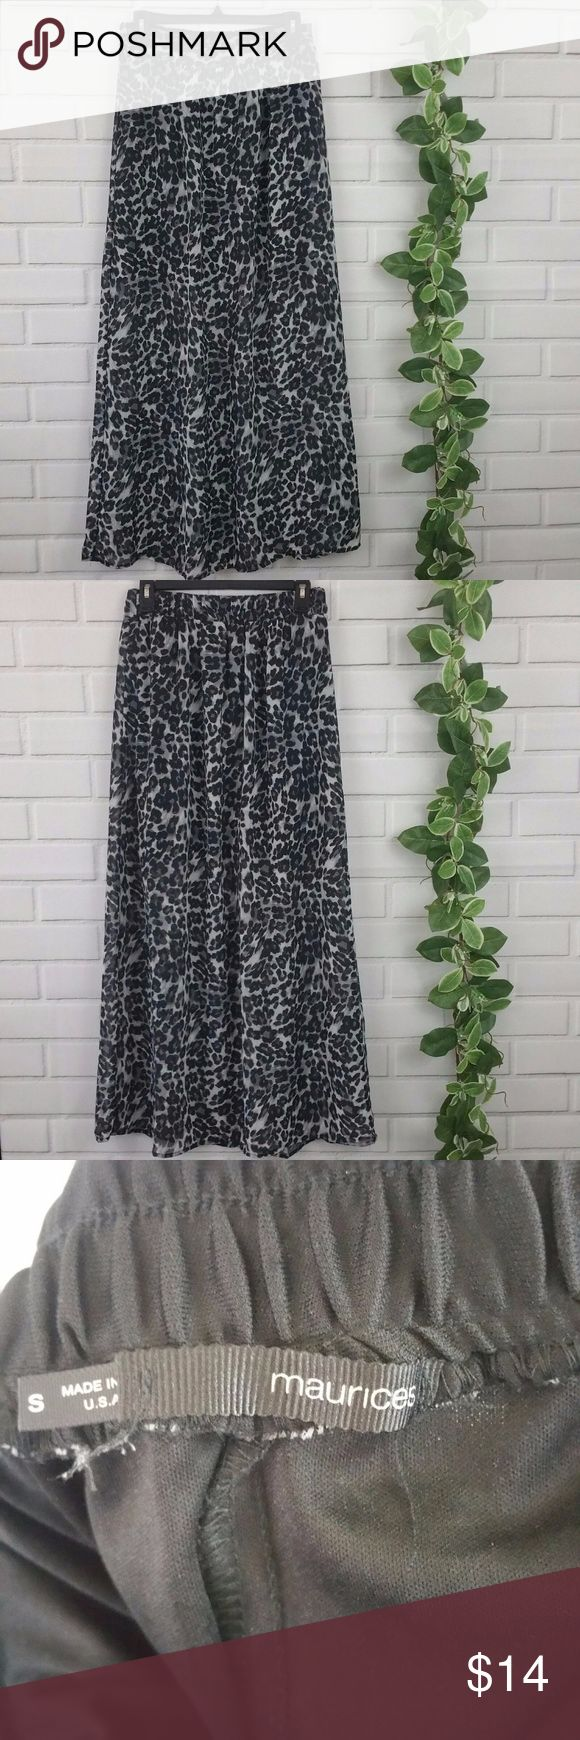 "Maurices Animal Leopard Gray Black Maxi Skirt Maurices long gray and black leopard print maxi skirt. Back half of waistband is stretchy elastic, front half is not. Size small  waist- 14"" across, 28"" around length- 40.5"" Maurices Skirts Maxi"